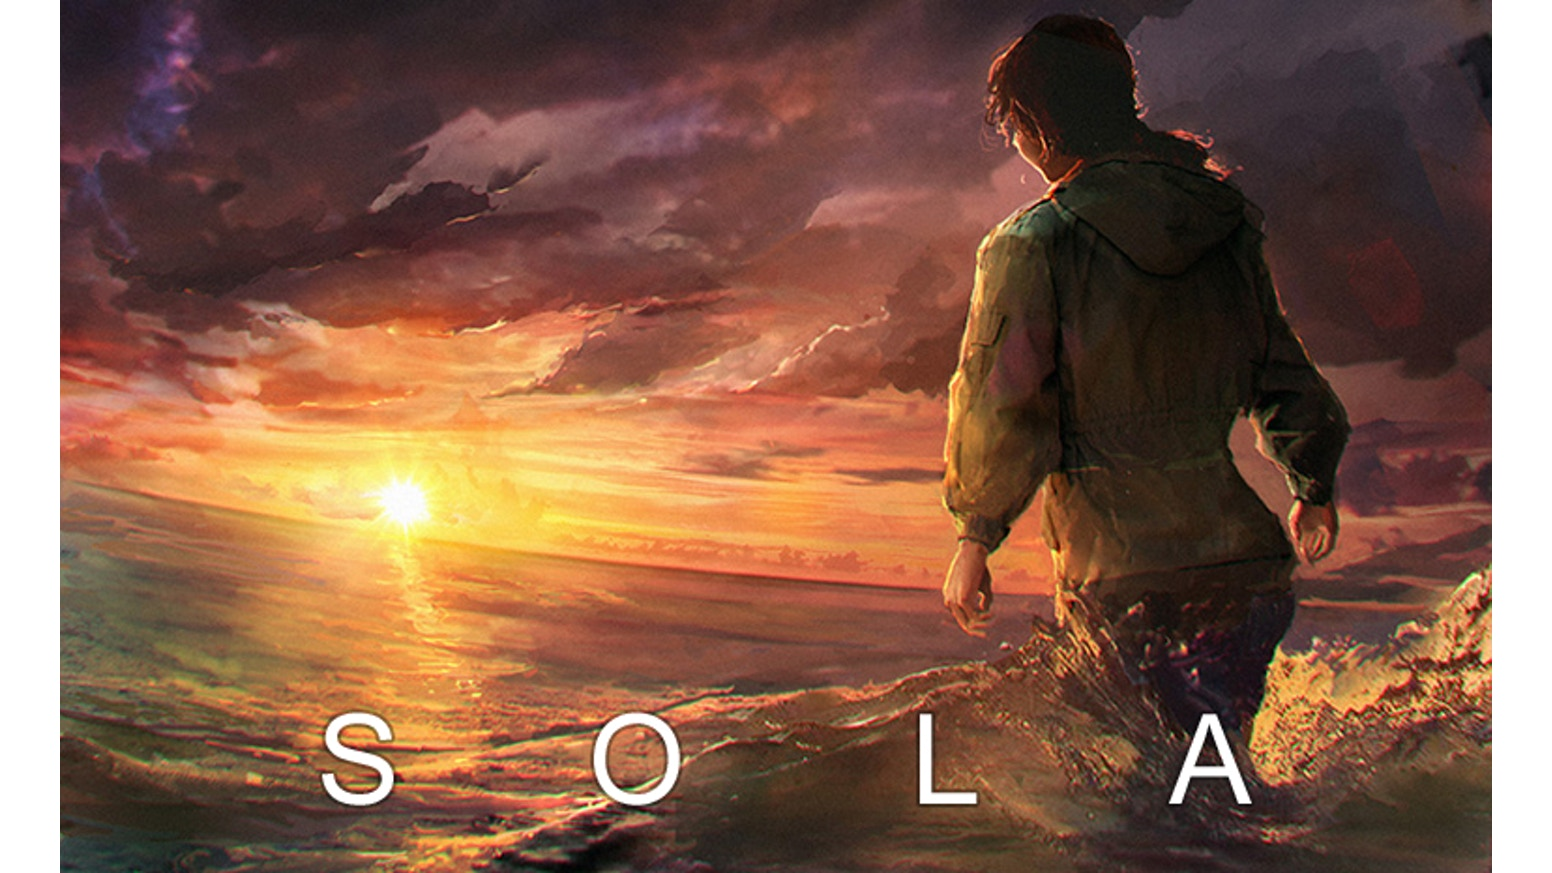 Sola What If The Last Surviving Human Didn T Want To